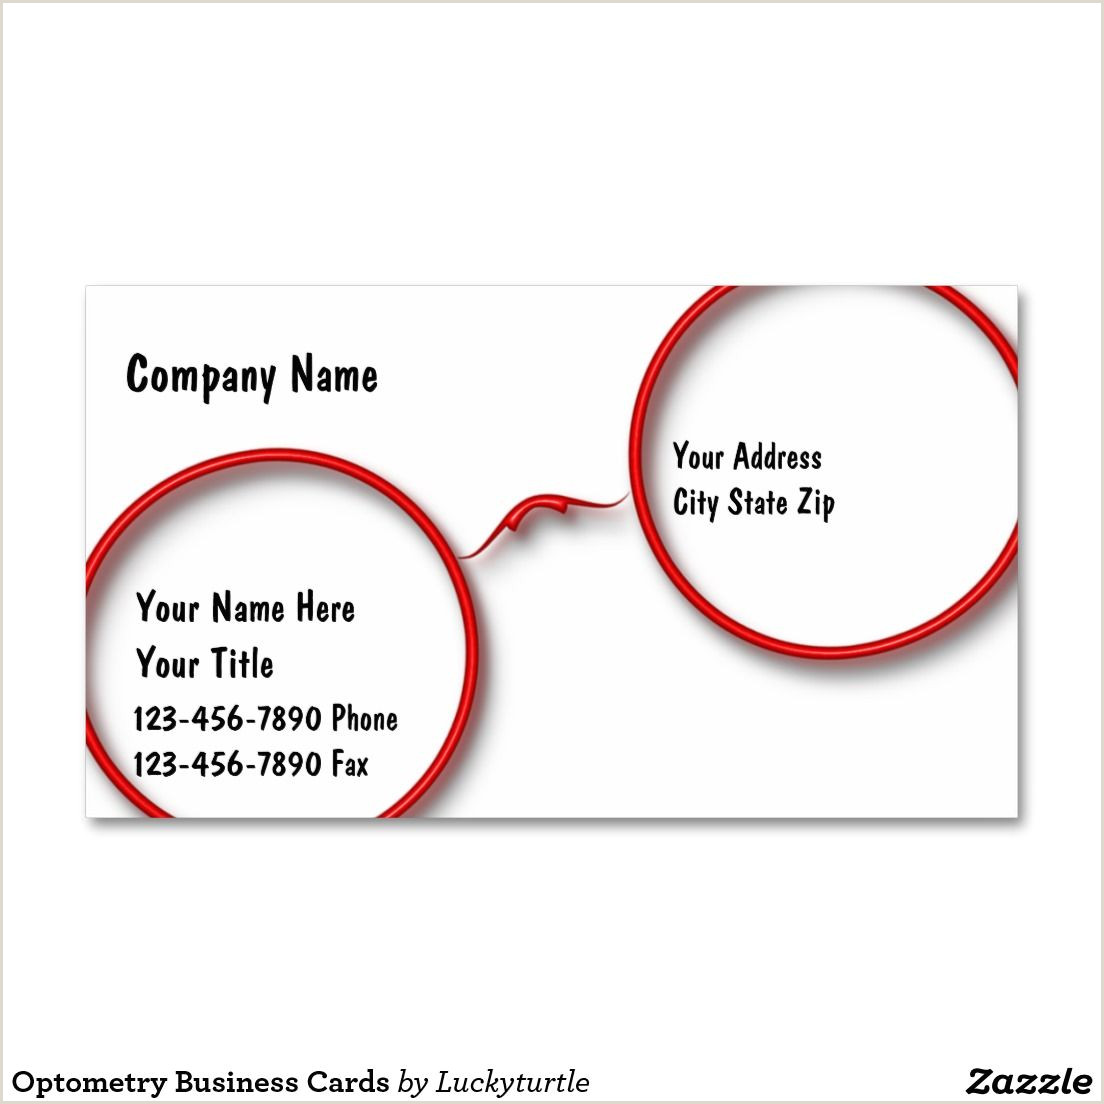 Unique Eyecare Business Cards Optometry Business Cards Zazzle